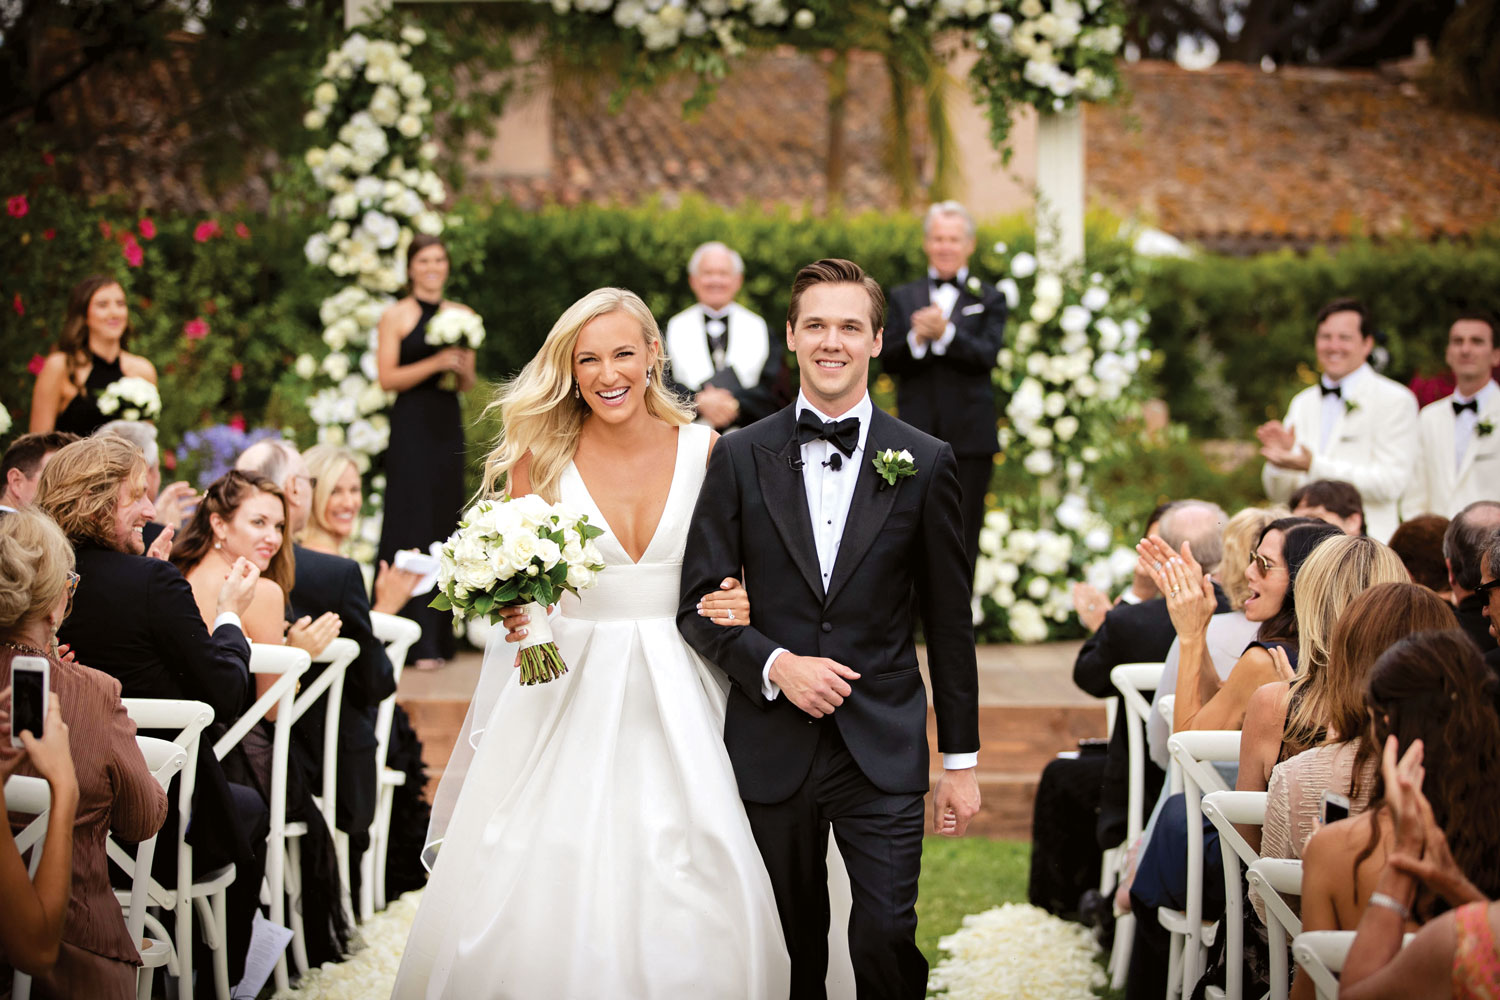 Inside Weddings magazine winter 2020 issue preview happy bride and groom outdoor wedding ceremony recessional